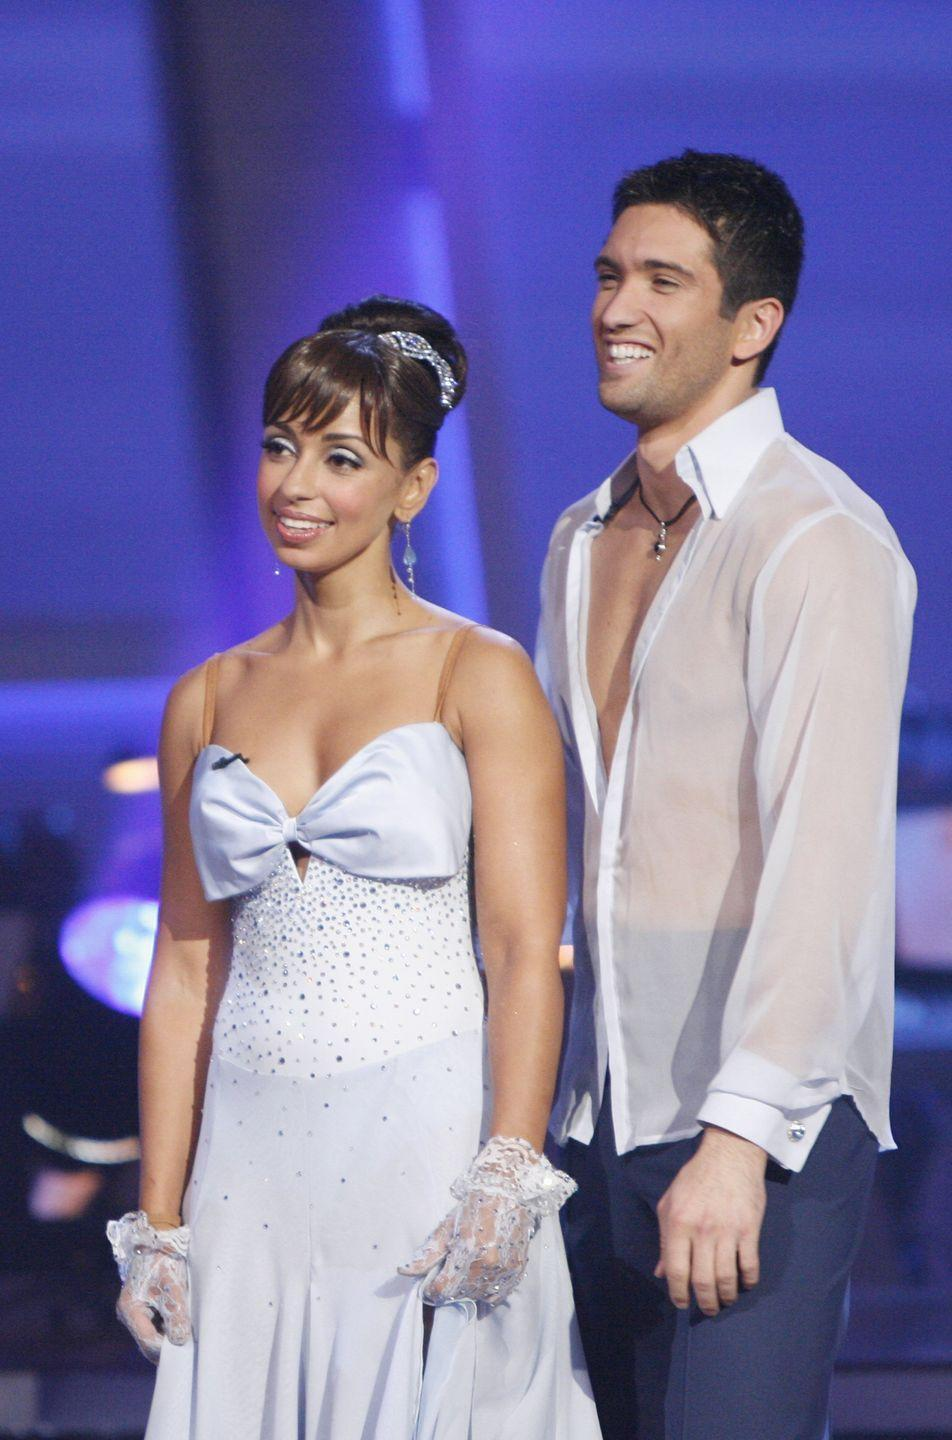 "<p>The singer had a minor setback right before the season nine premiere. She accidentally cut her hand on broken glass and had to go to the hospital to get stitches the night before the premiere episode, <em><a href=""https://okmagazine.com/news/mya-suffers-injury-night-dwts-premiere/"" rel=""nofollow noopener"" target=""_blank"" data-ylk=""slk:Ok Magazine"" class=""link rapid-noclick-resp"">Ok Magazine</a></em> reported. Mya put the minor injury behind her and finished in second place.</p>"